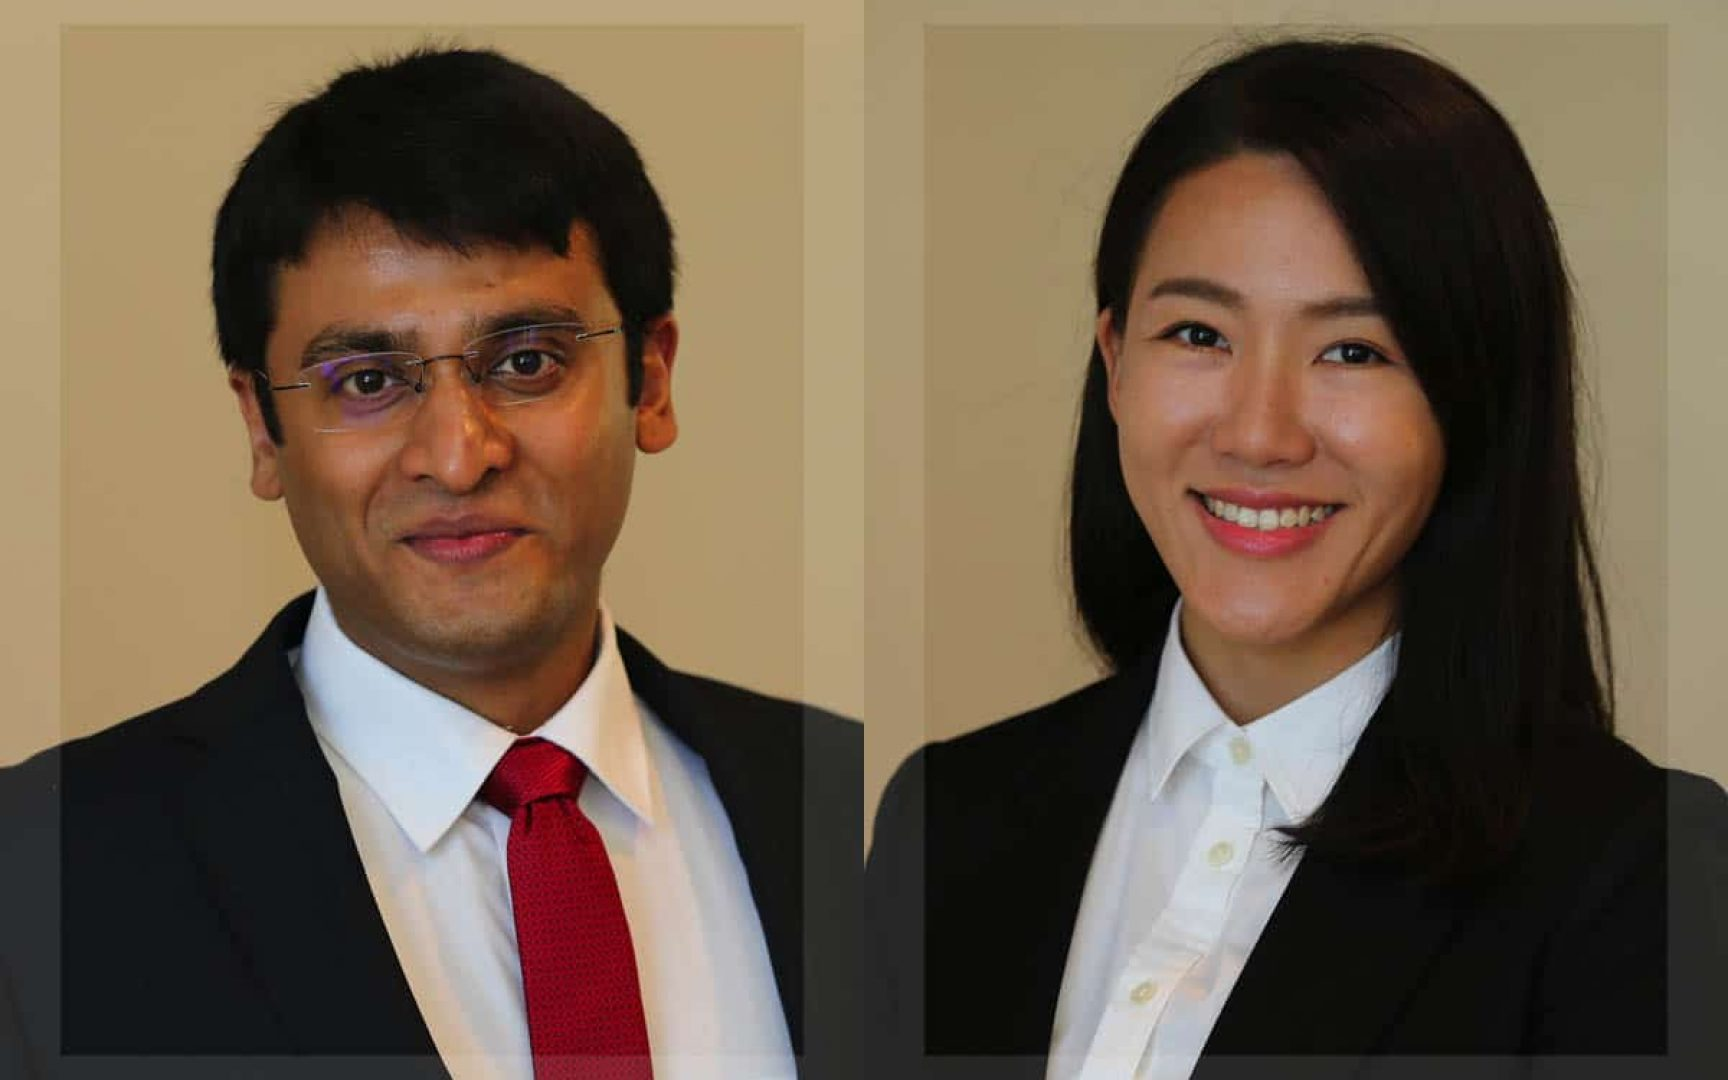 UF MSRE students Arjun Choudhary and Yeji Moon